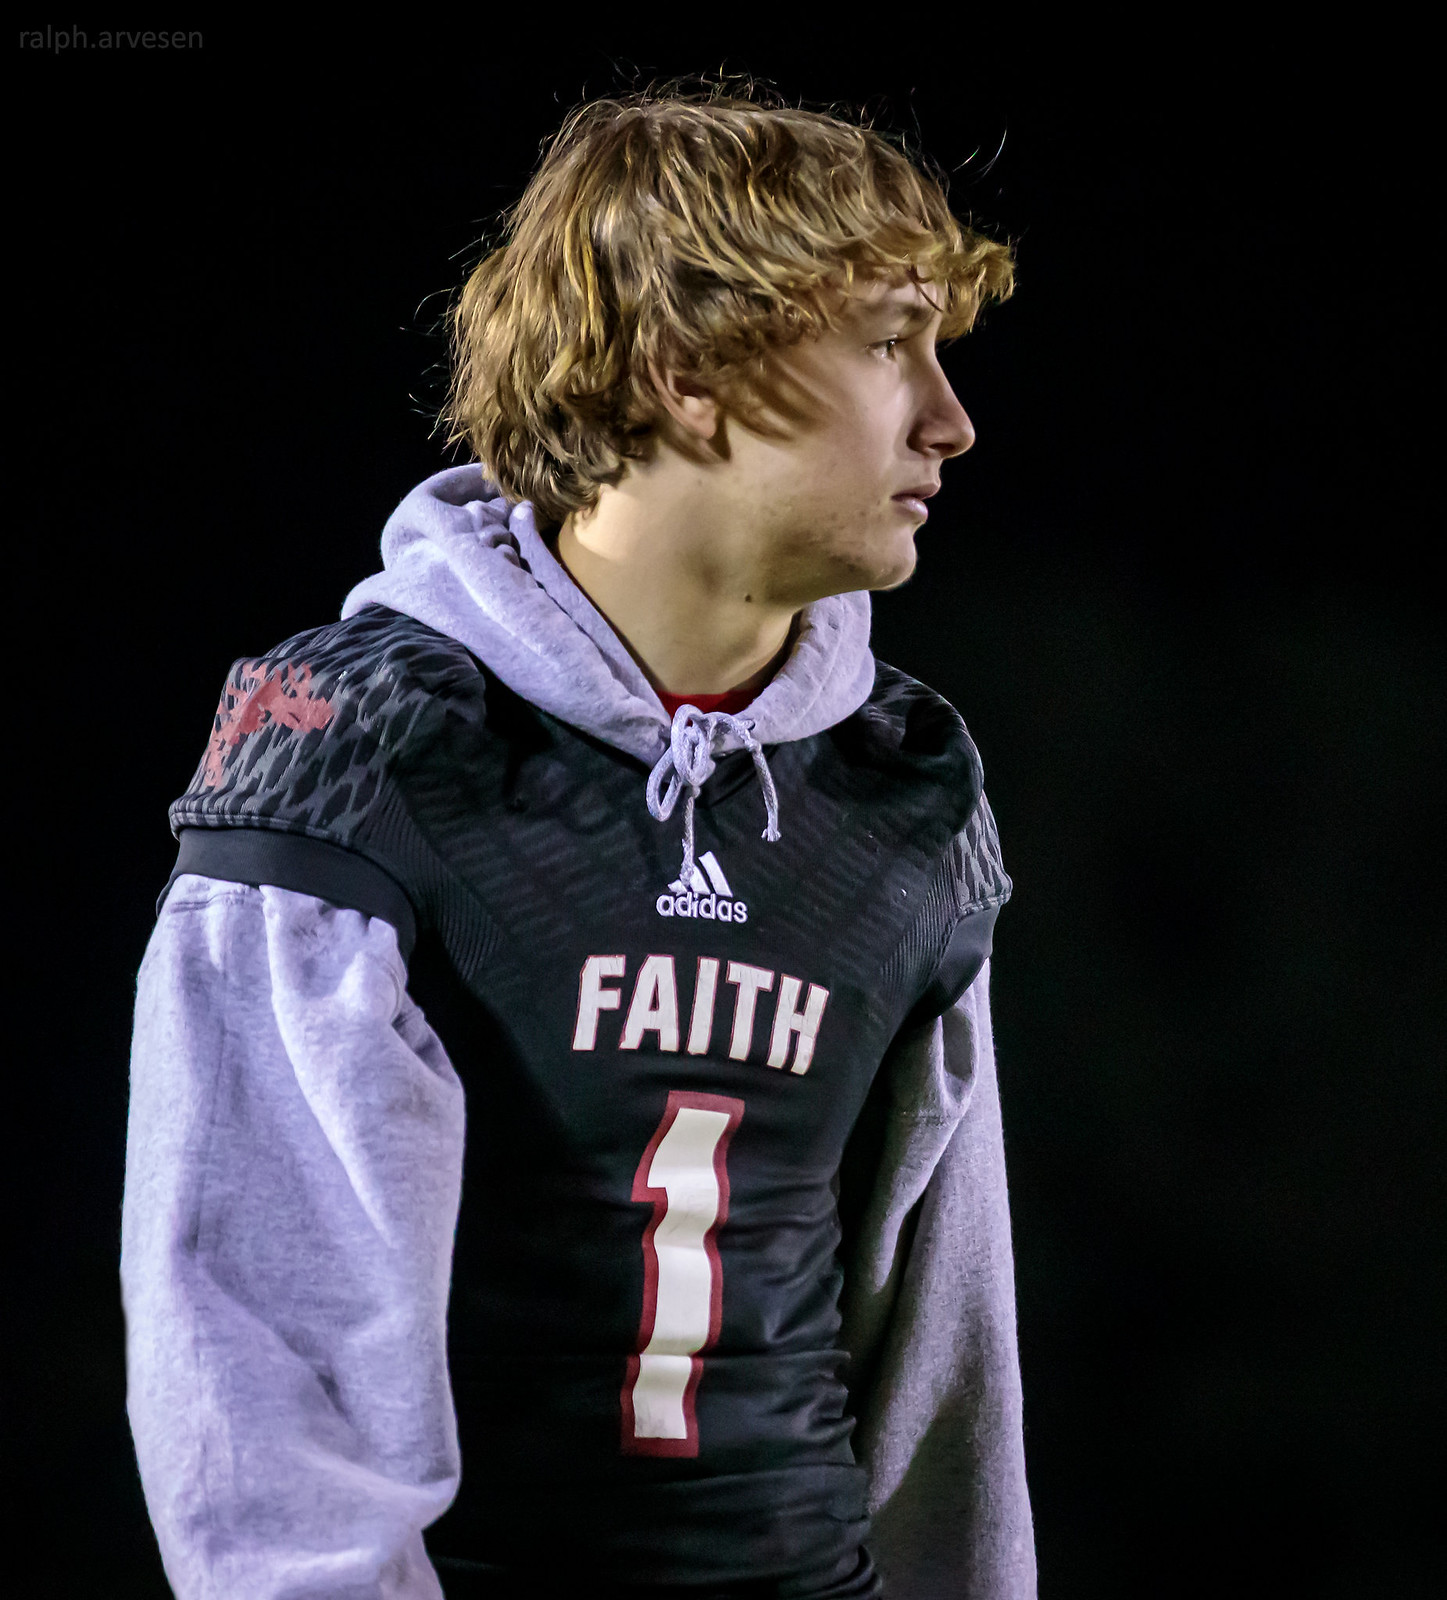 Faith Academy vs Allen Academy | Texas Review | Ralph Arvesen